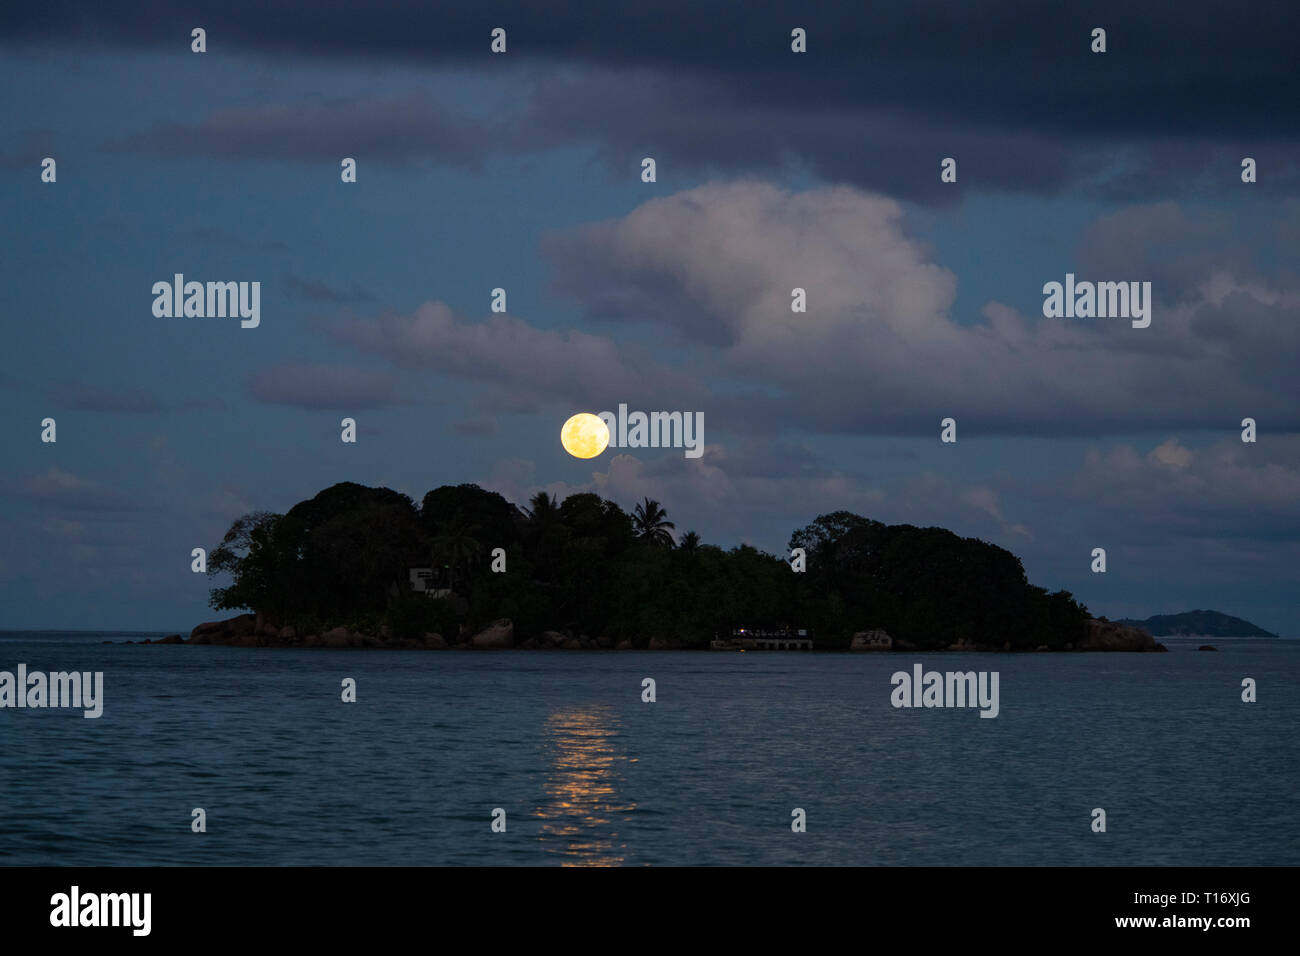 A full moon rising over Chauve Souris island off Praslin, the Seychelles Stock Photo